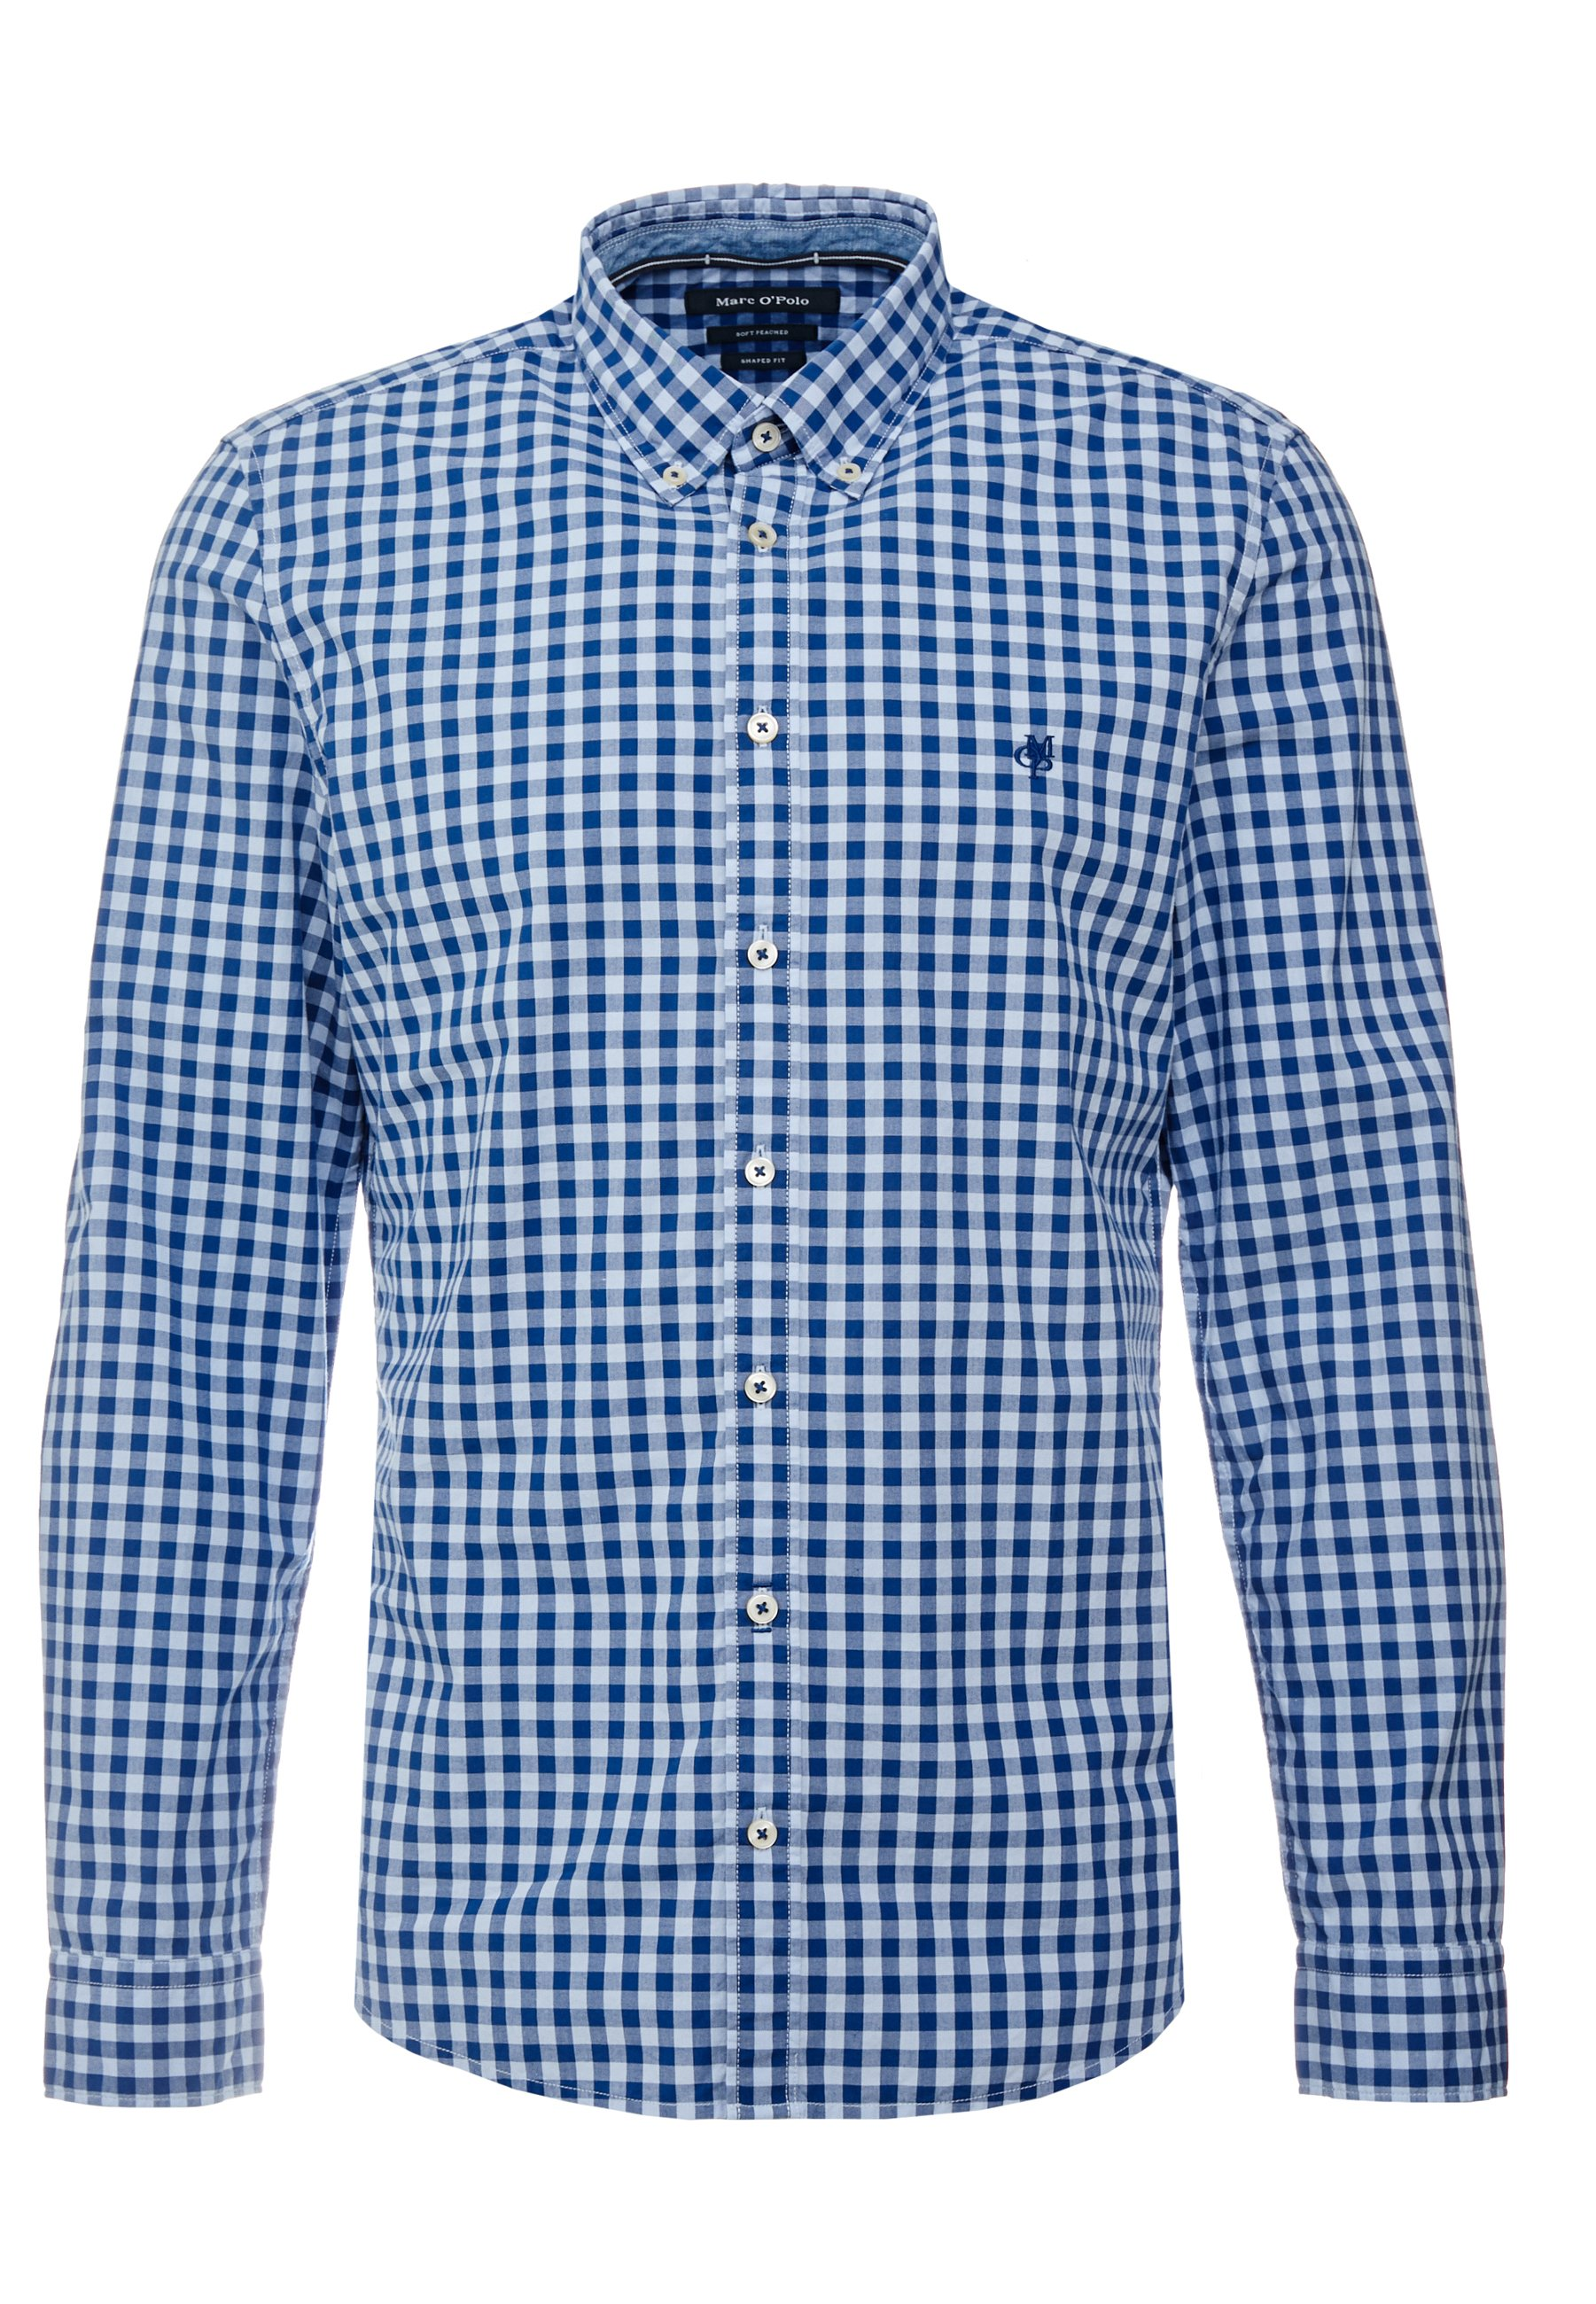 Marc O'polo Button Down Long Sleeve Inserted - Skjorta Combo